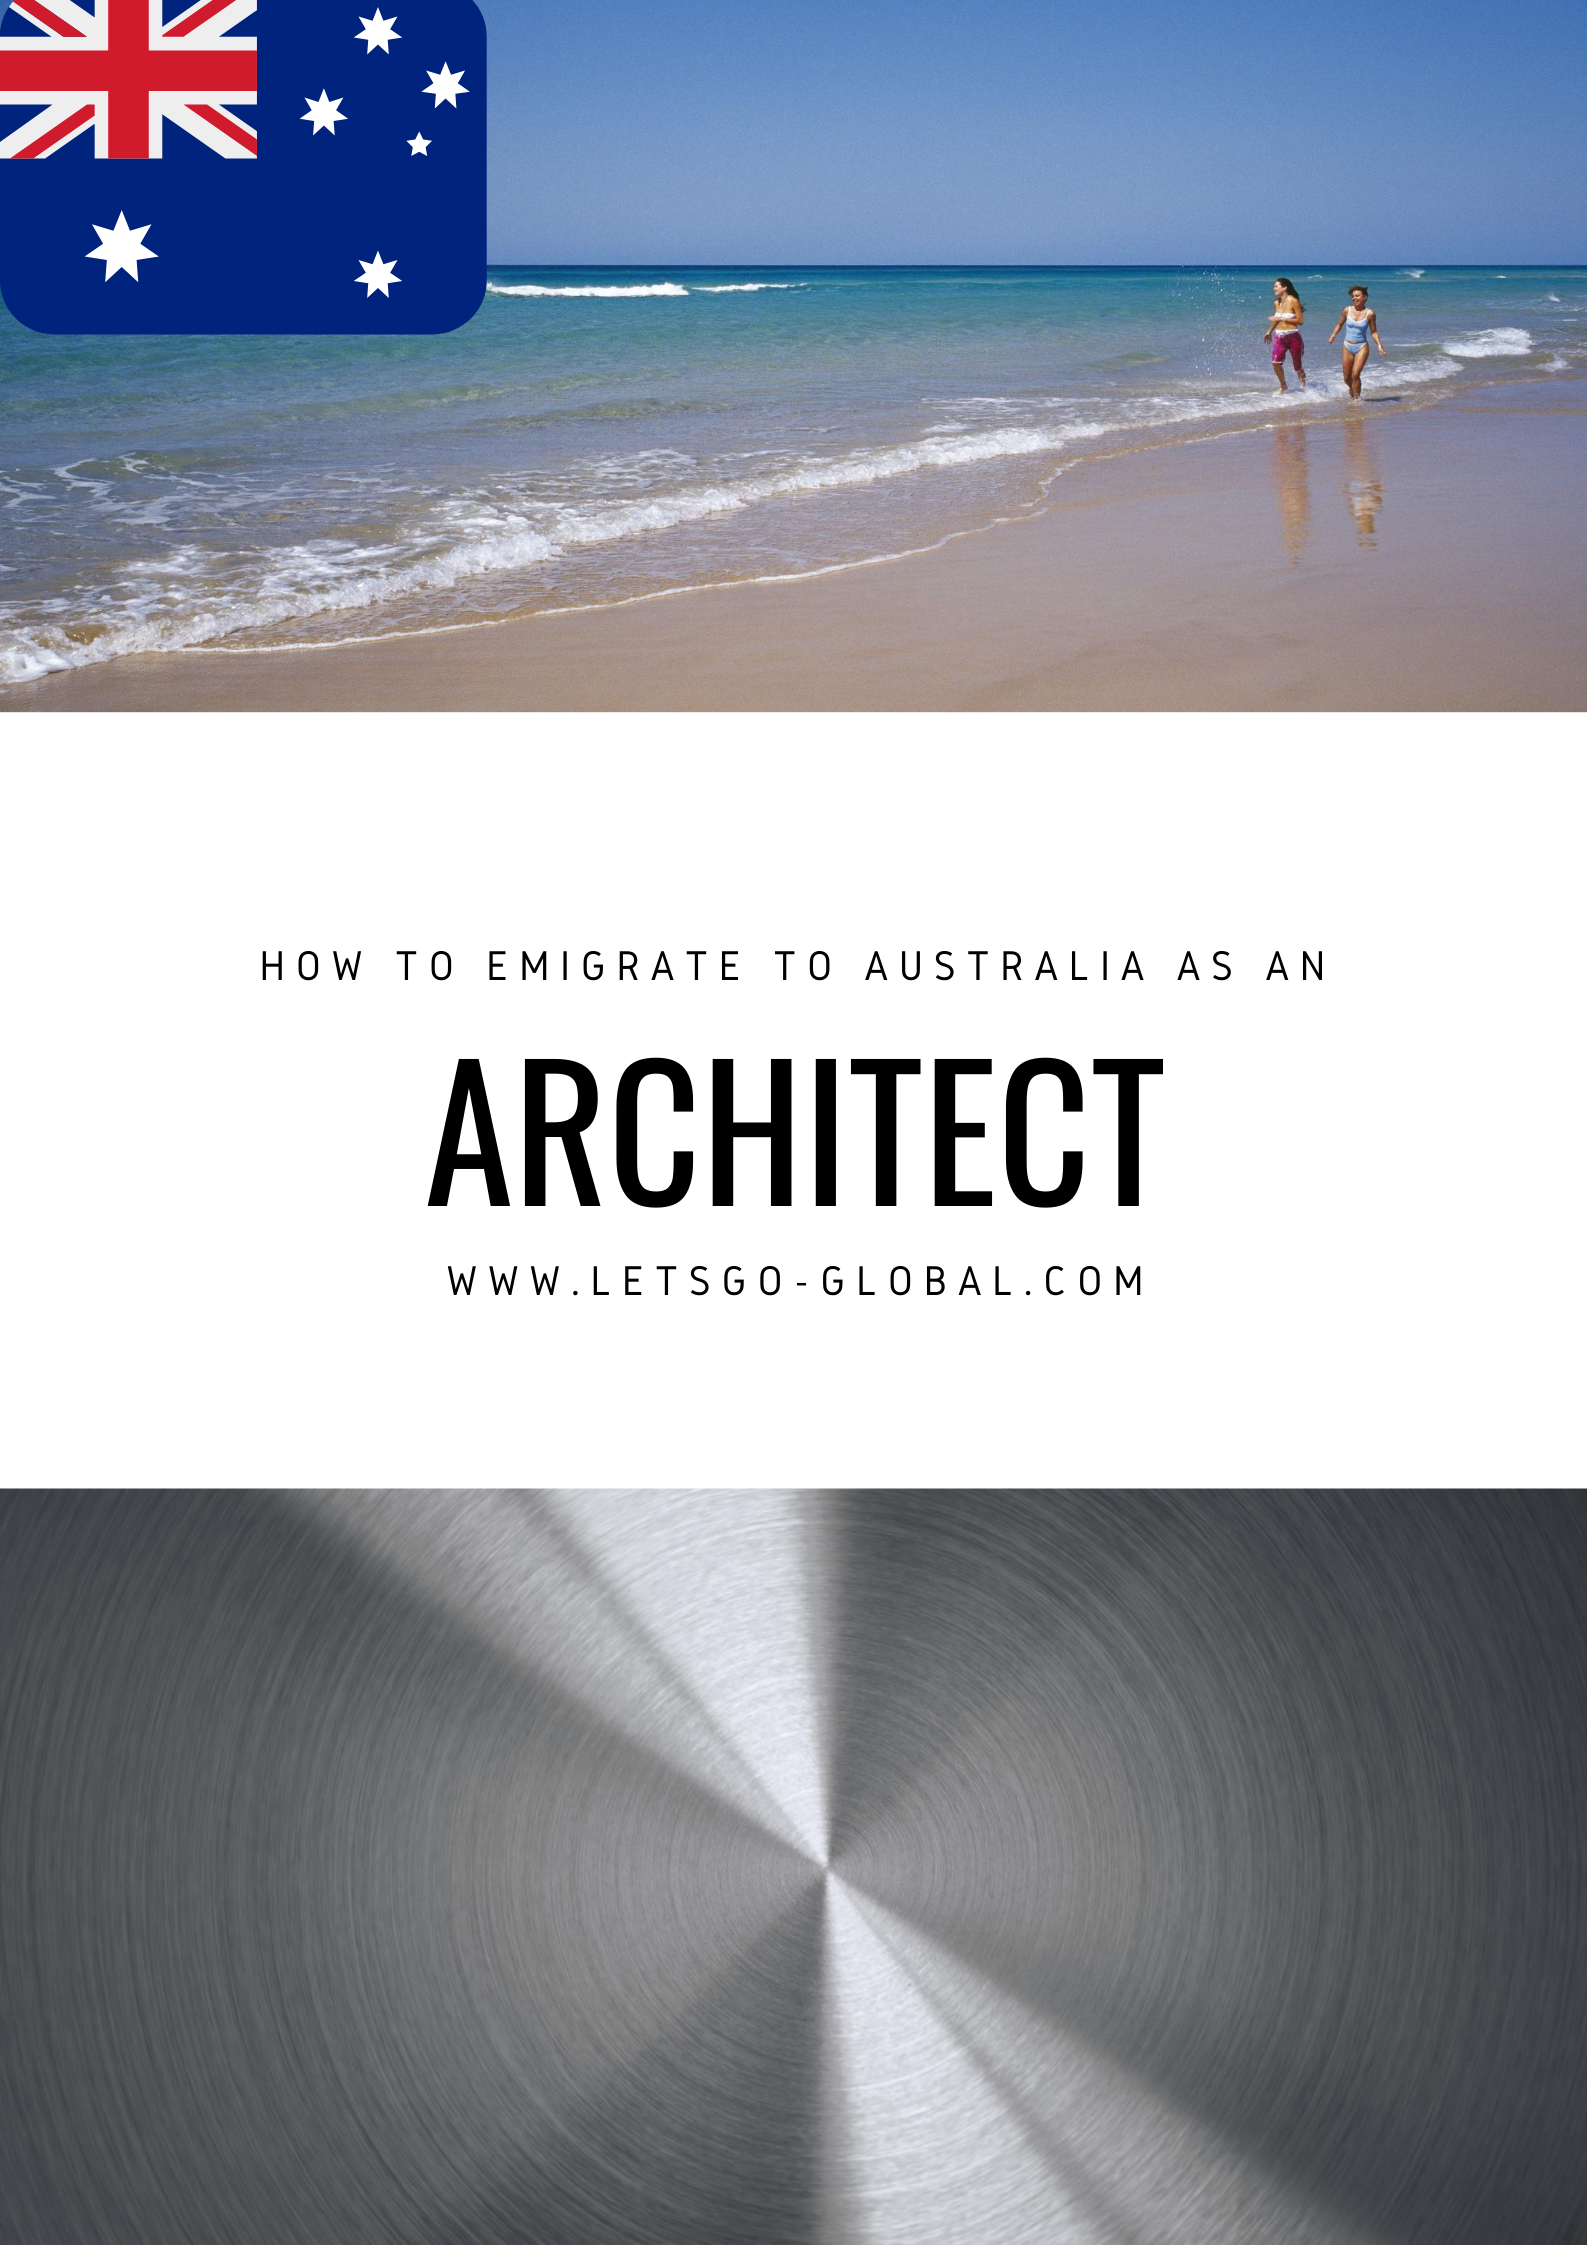 Migrate to Australia as an Architect